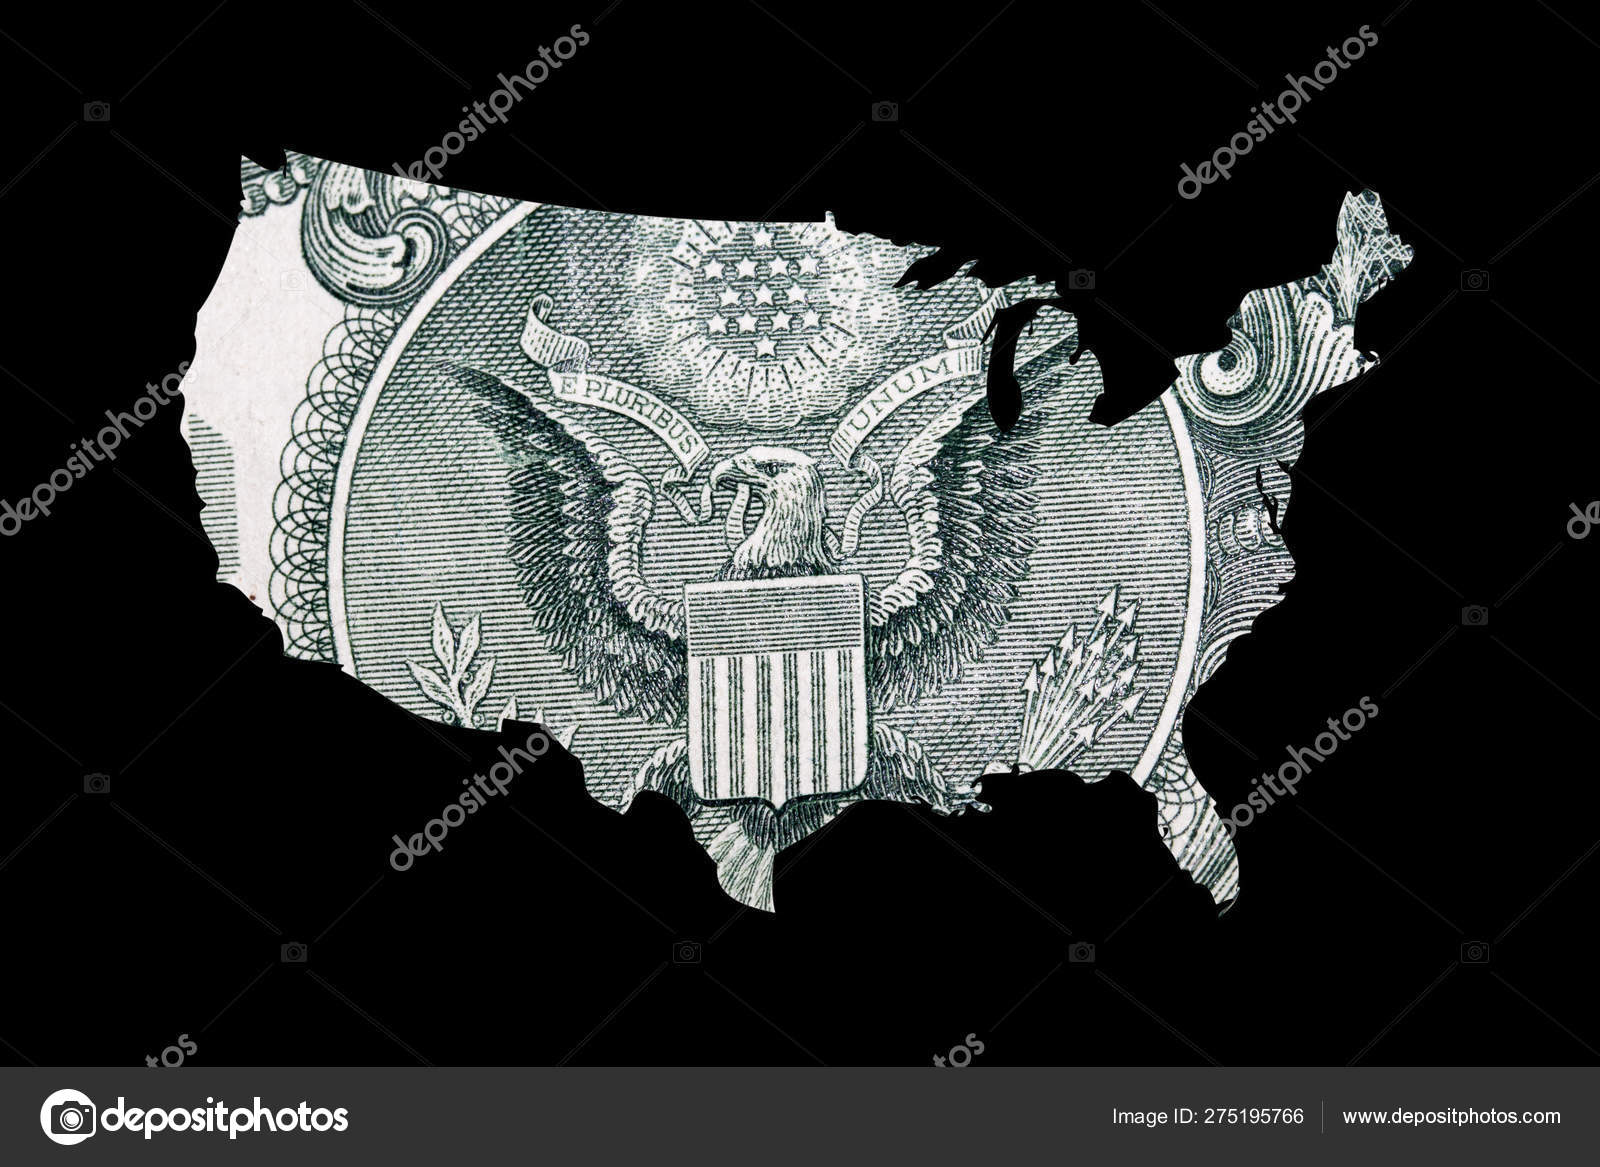 Dollar Texture Map United States America Black Background ... on puerto rico dollar, kelsey dollar, bajan dollar, technology dollar, australia's dollar, singapore dollar, canadian dollar, snowflake dollar, 2014 us dollar, lizzie dollar, laos dollar, new taiwan dollar, us treasury dollar, professional dollar, world trade dollar, ruble dollar, us hundred dollar, argentine dollar, new zealand dollar, botswana dollar,